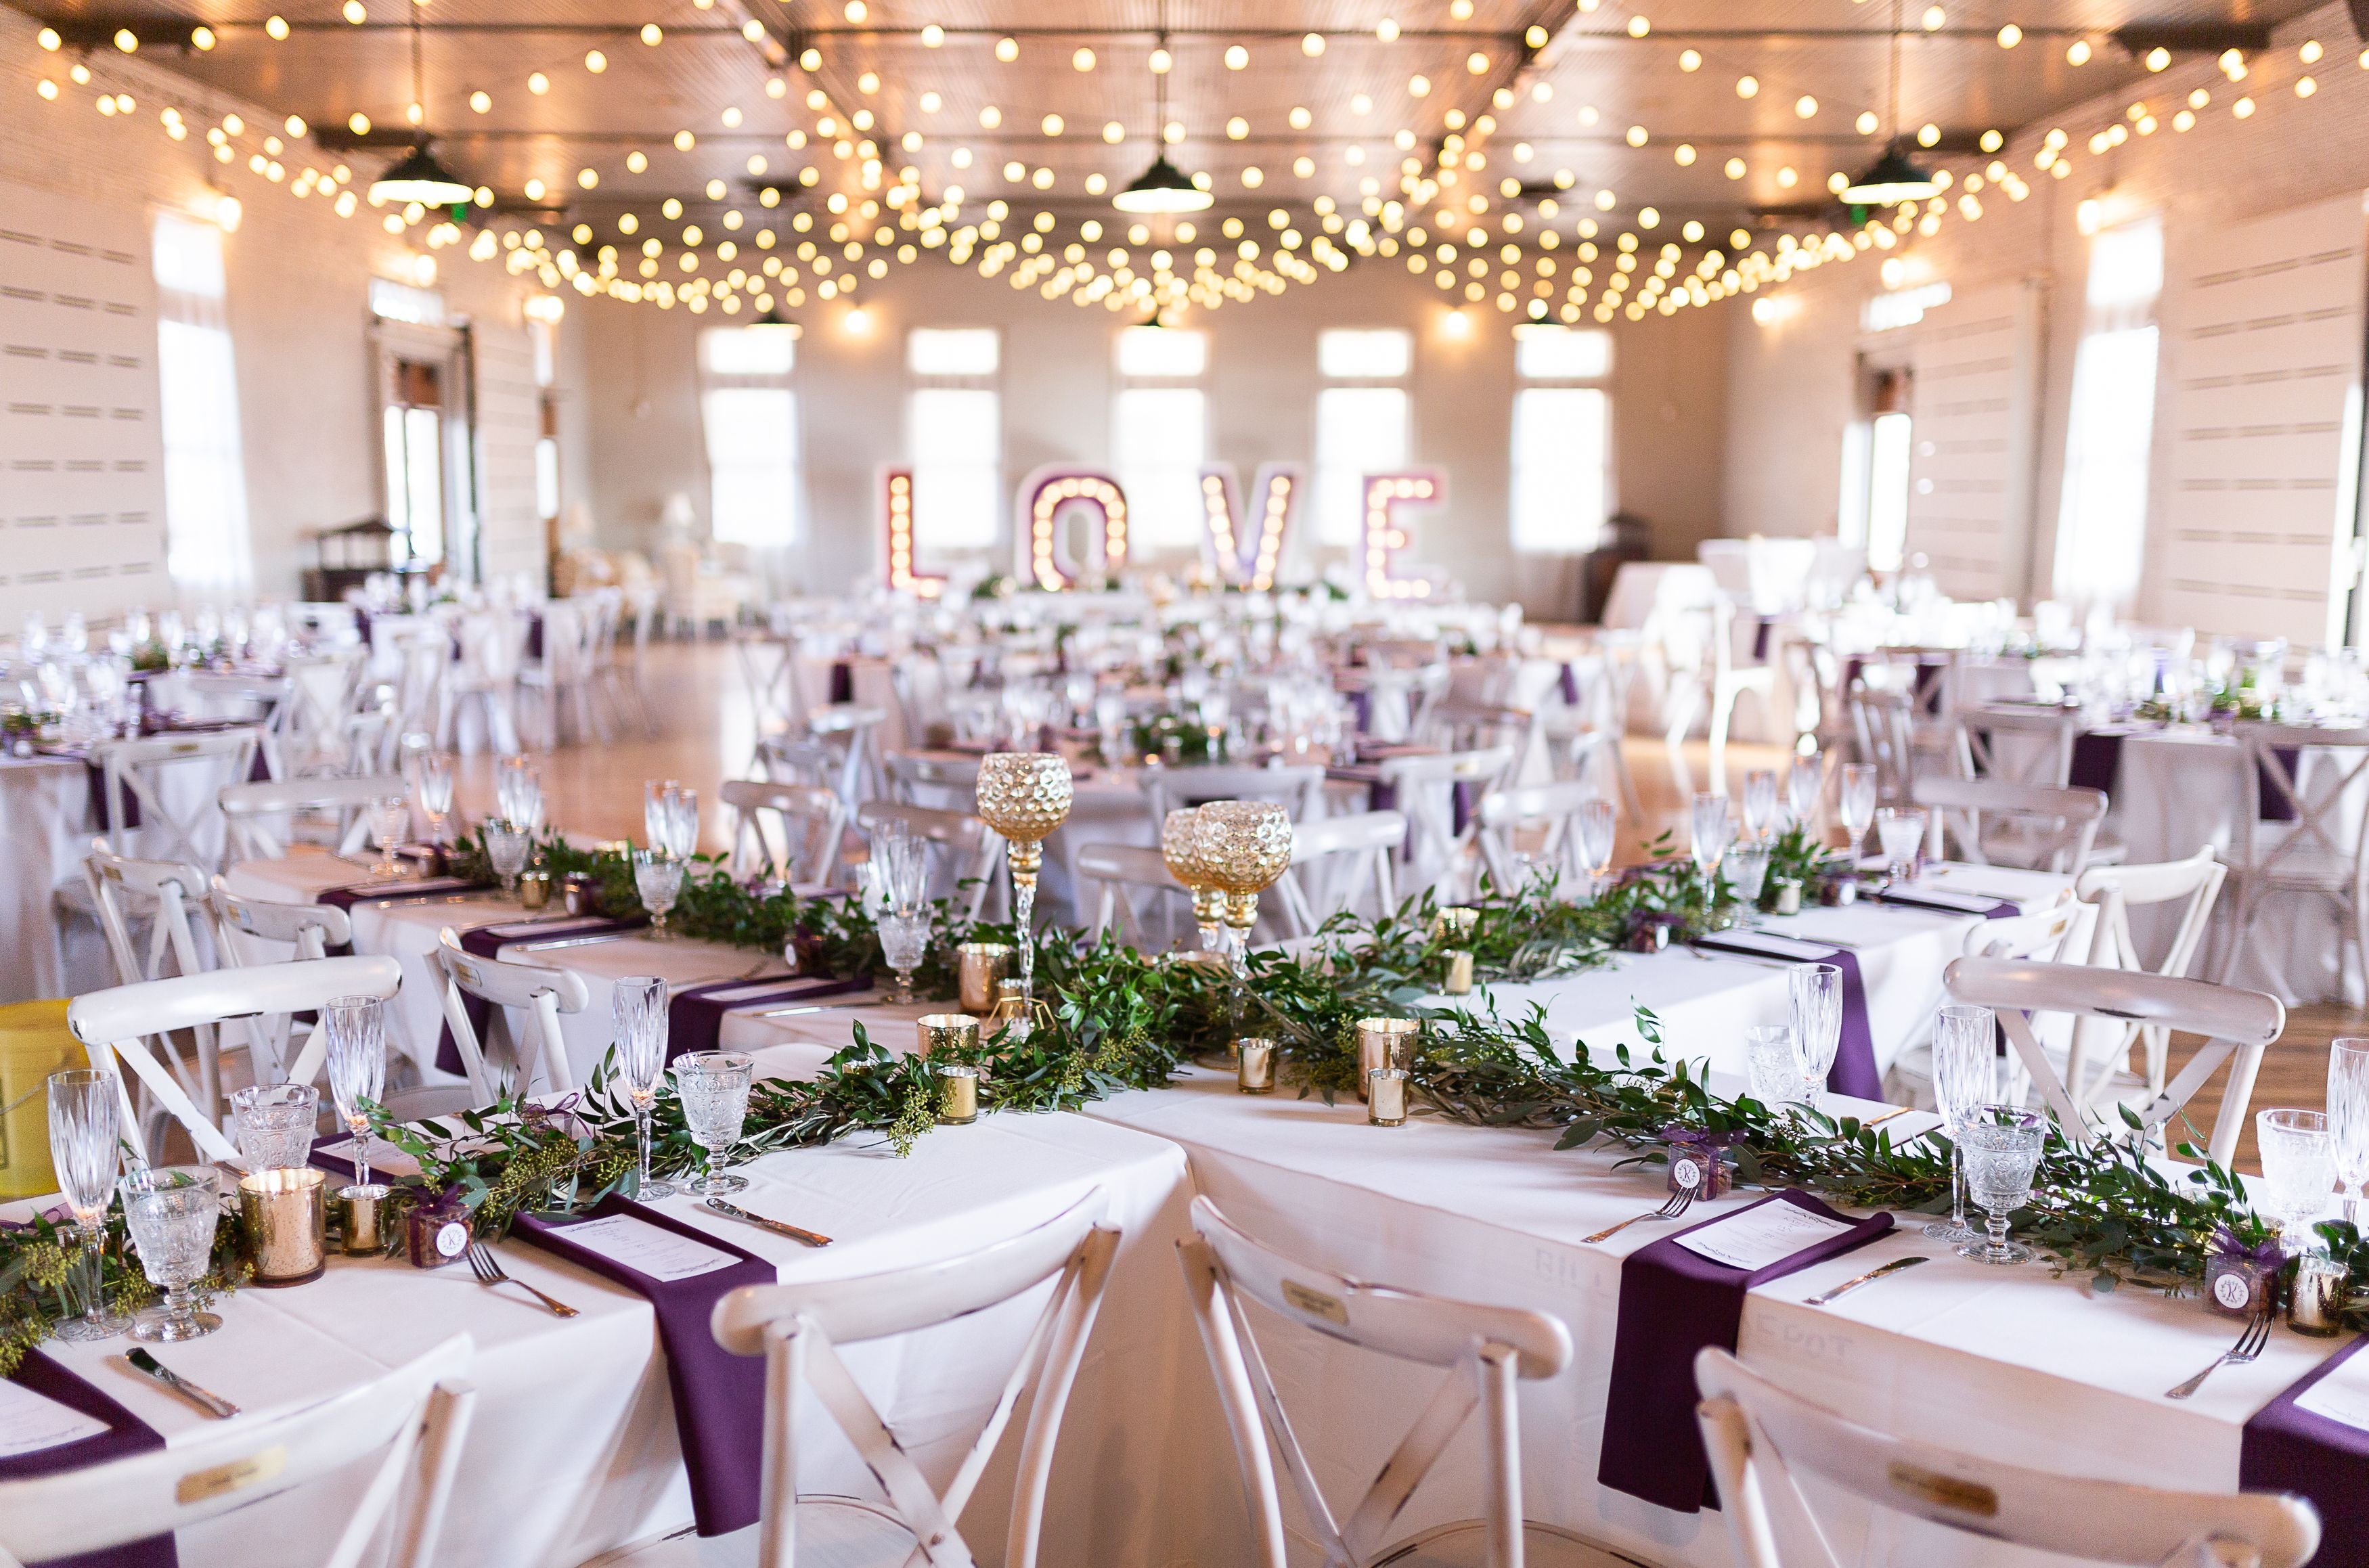 Reception Space For A Winter Purple Ivory And Gold Wedding In Mt Clients Kailey Ian Event Design Decor Be Event Decor Decor Design Wedding Decorations